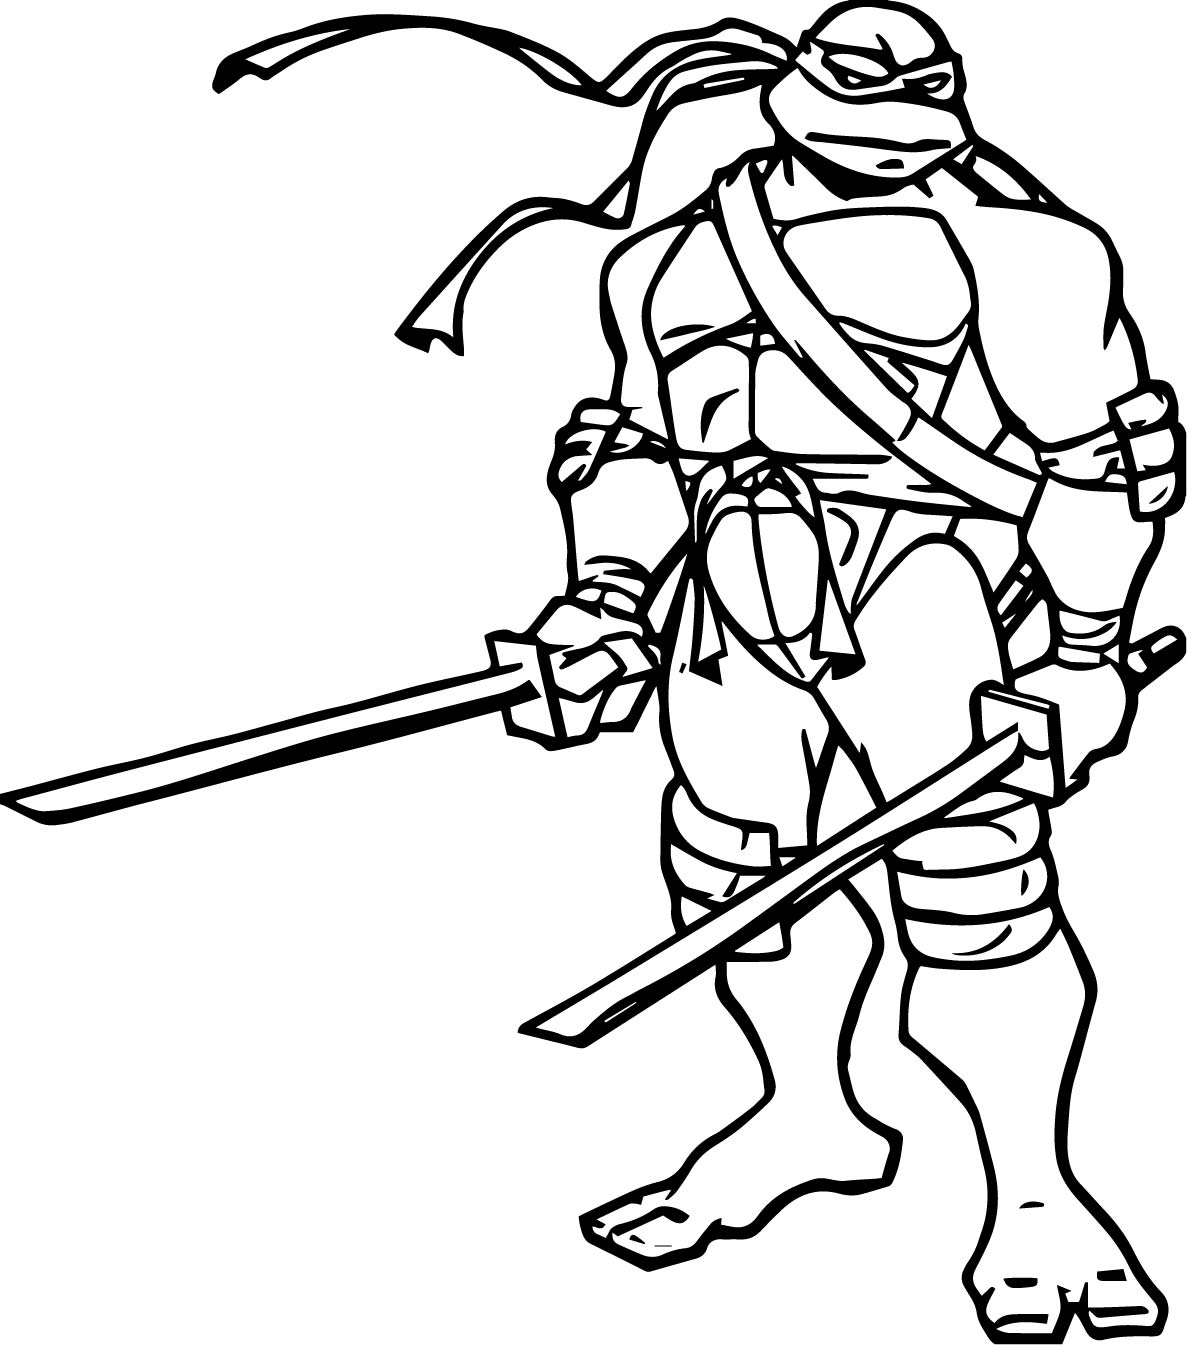 Tmnt Coloring Pages Leonardo